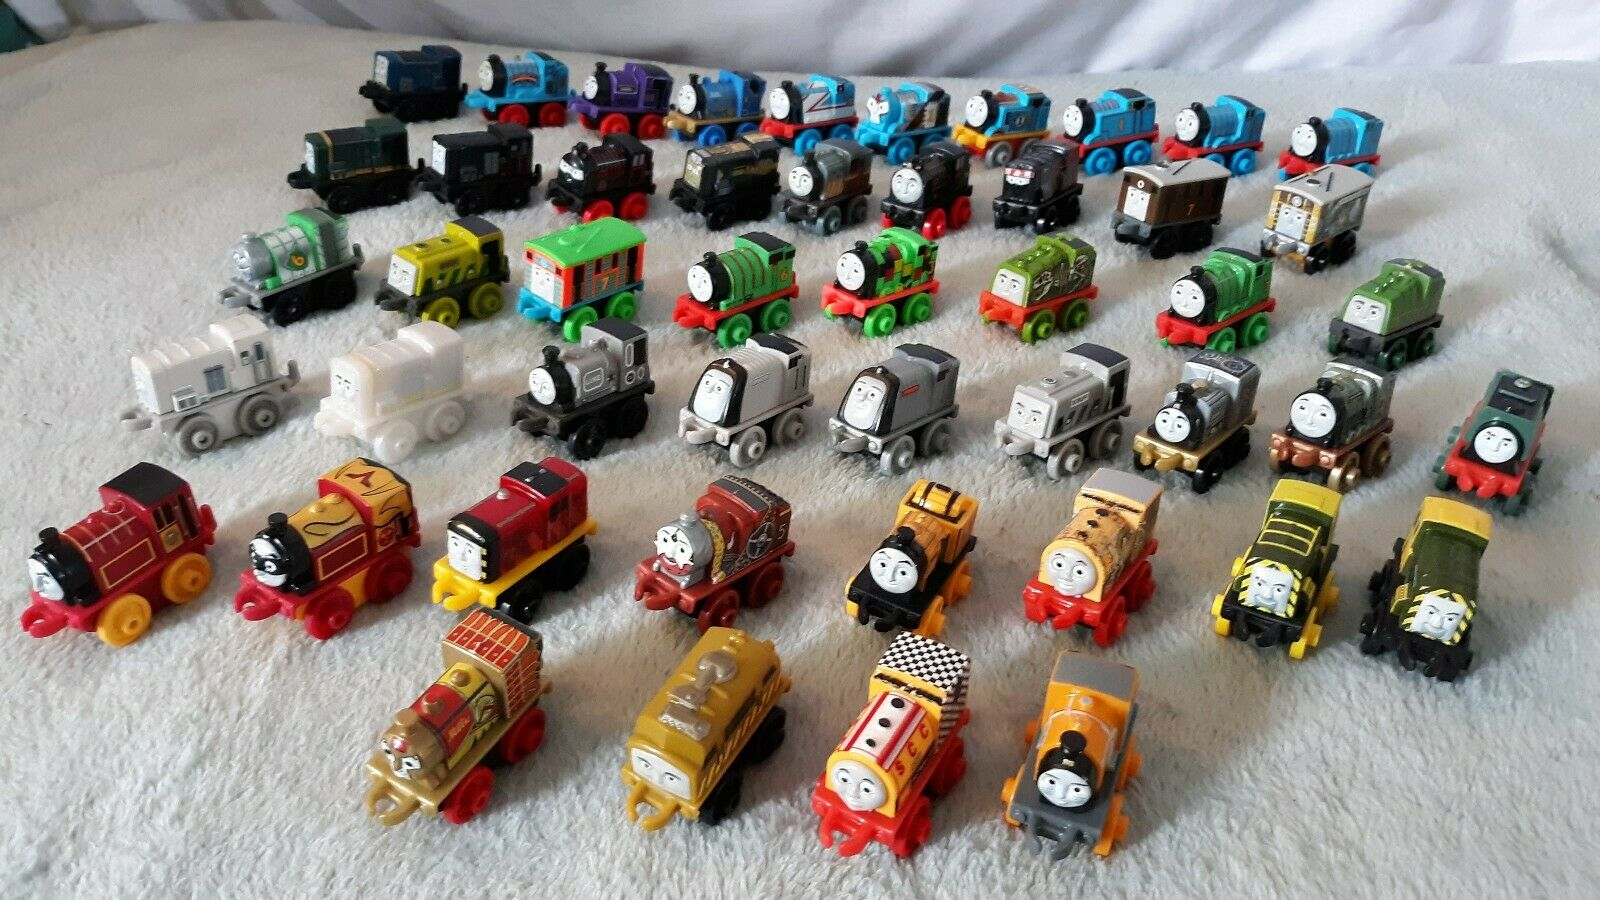 HUGE LOT OF 49 MINI THOMAS THE TRAIN AND FRIENDS CAR FIGURES